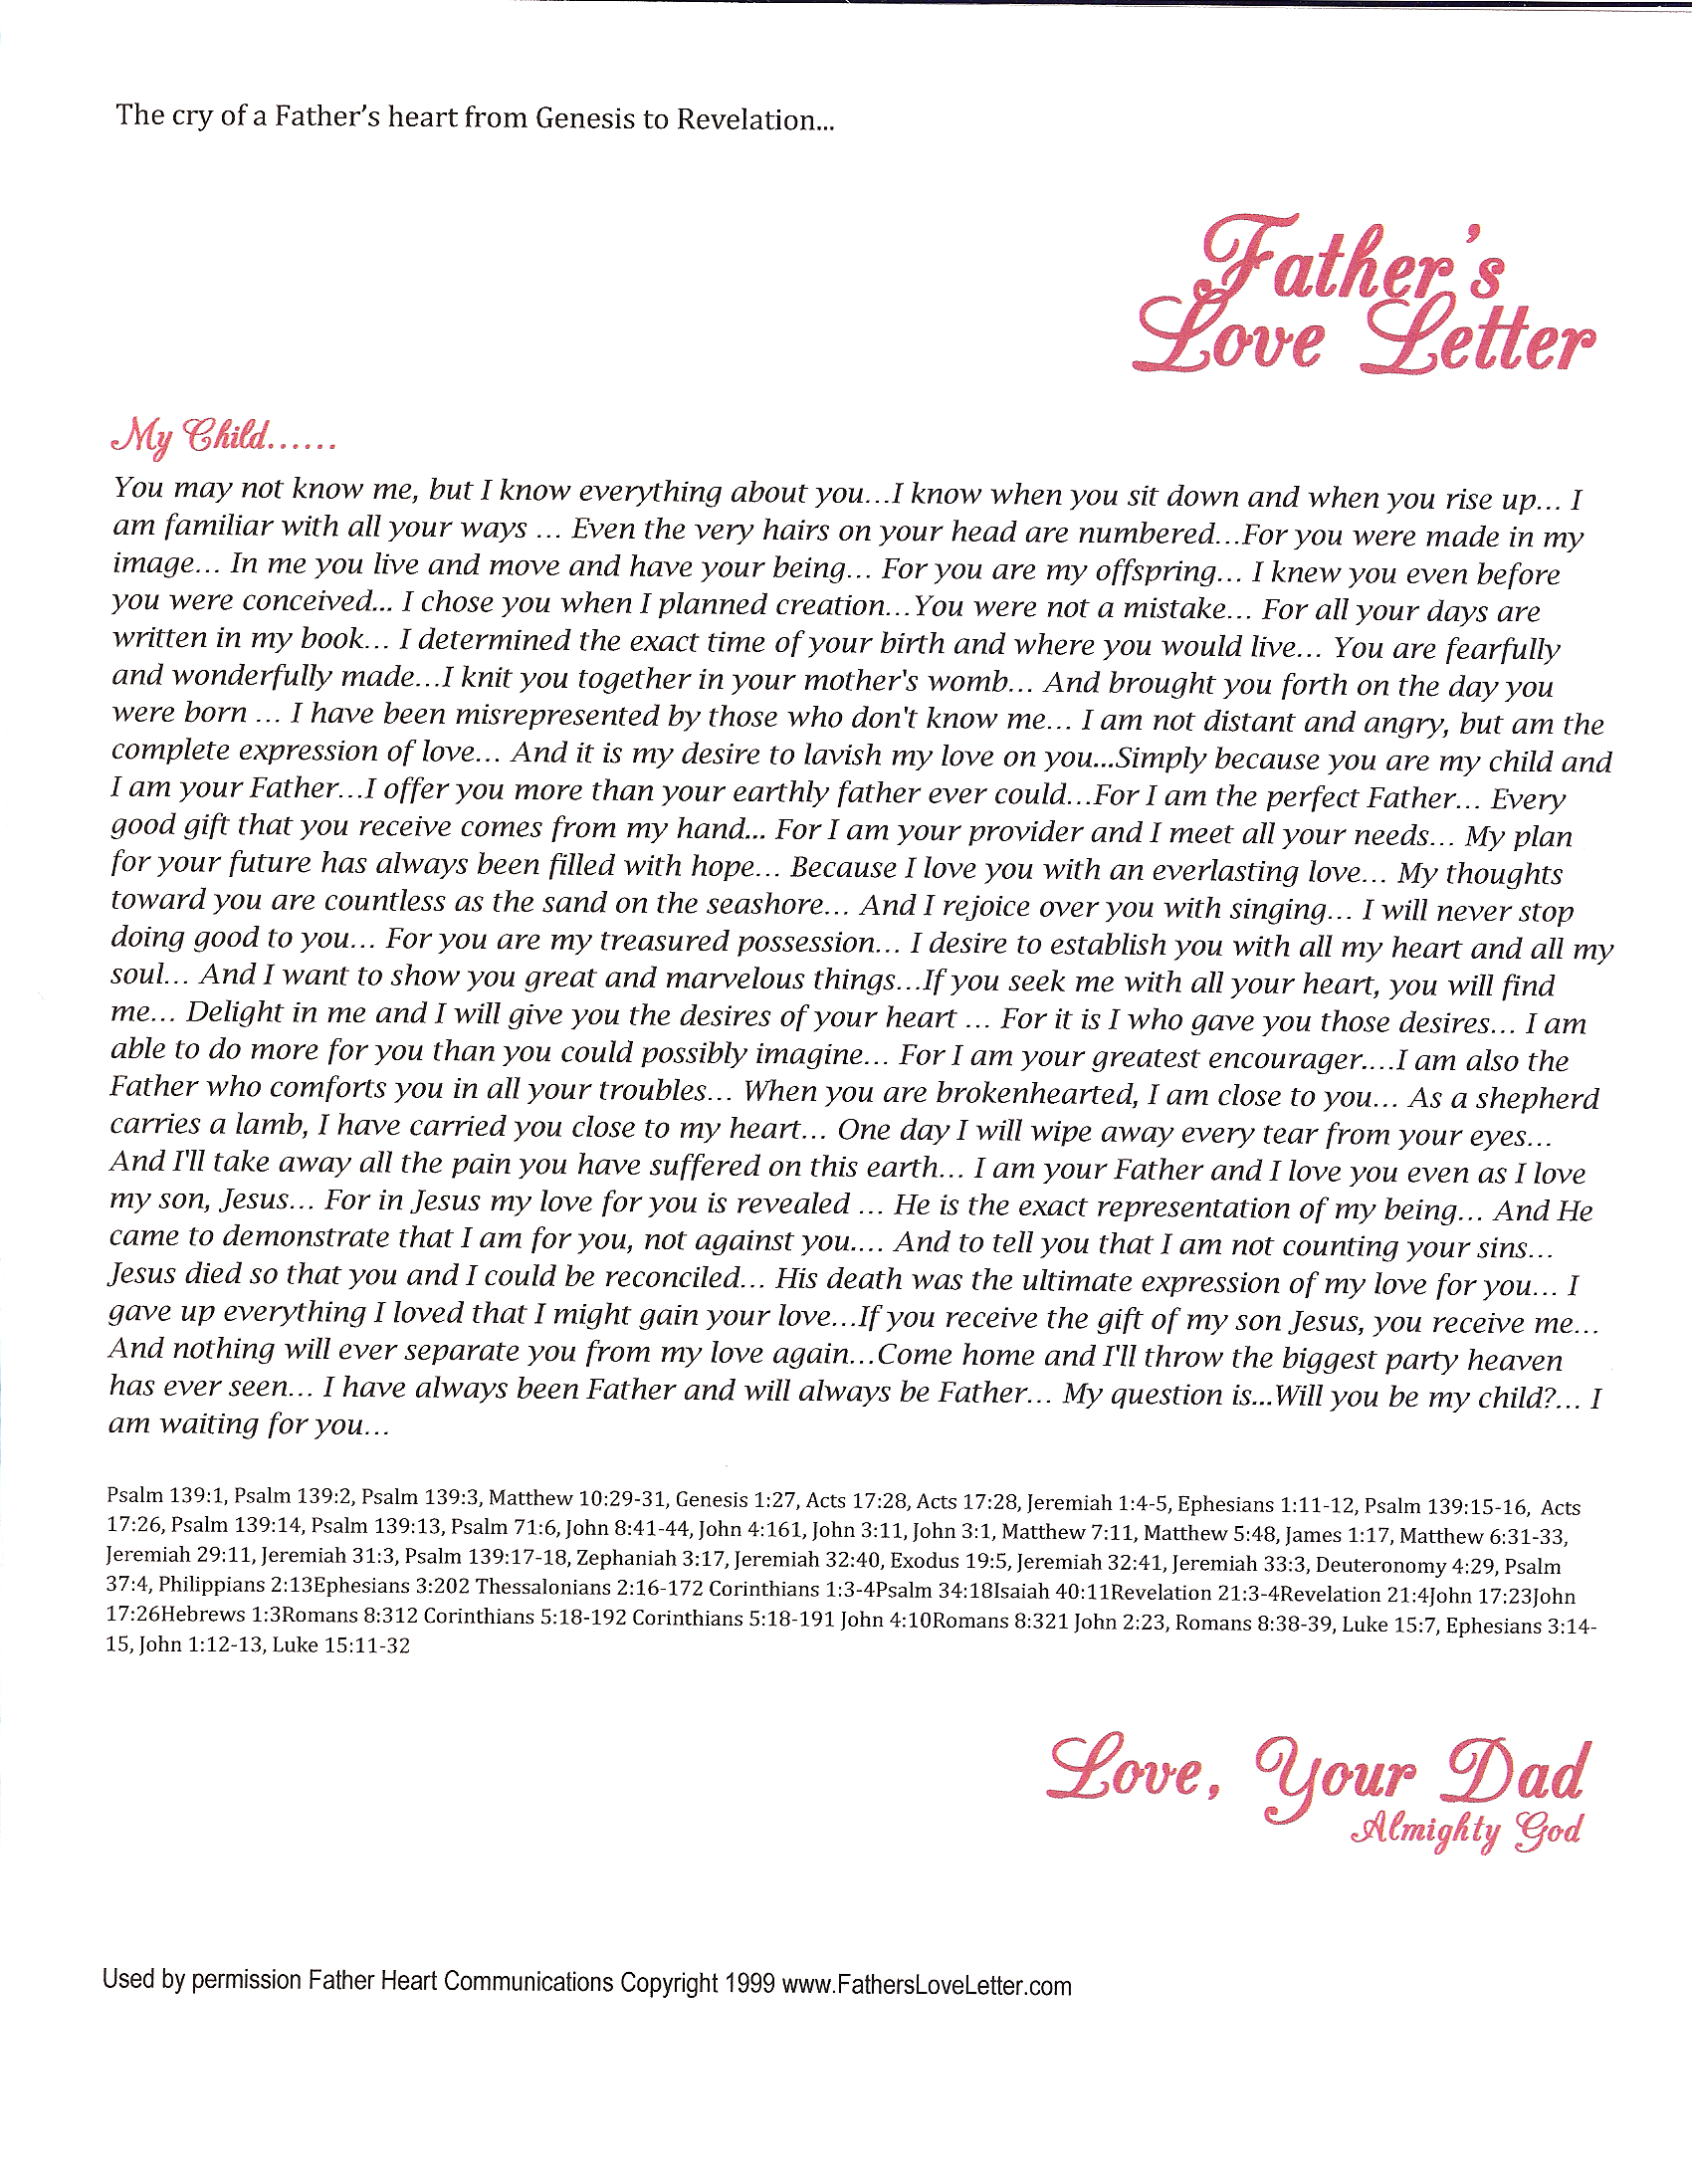 this is a compilation of scriptures put together by barry adams he calls it a fathers love letter it brings me to my knees love this